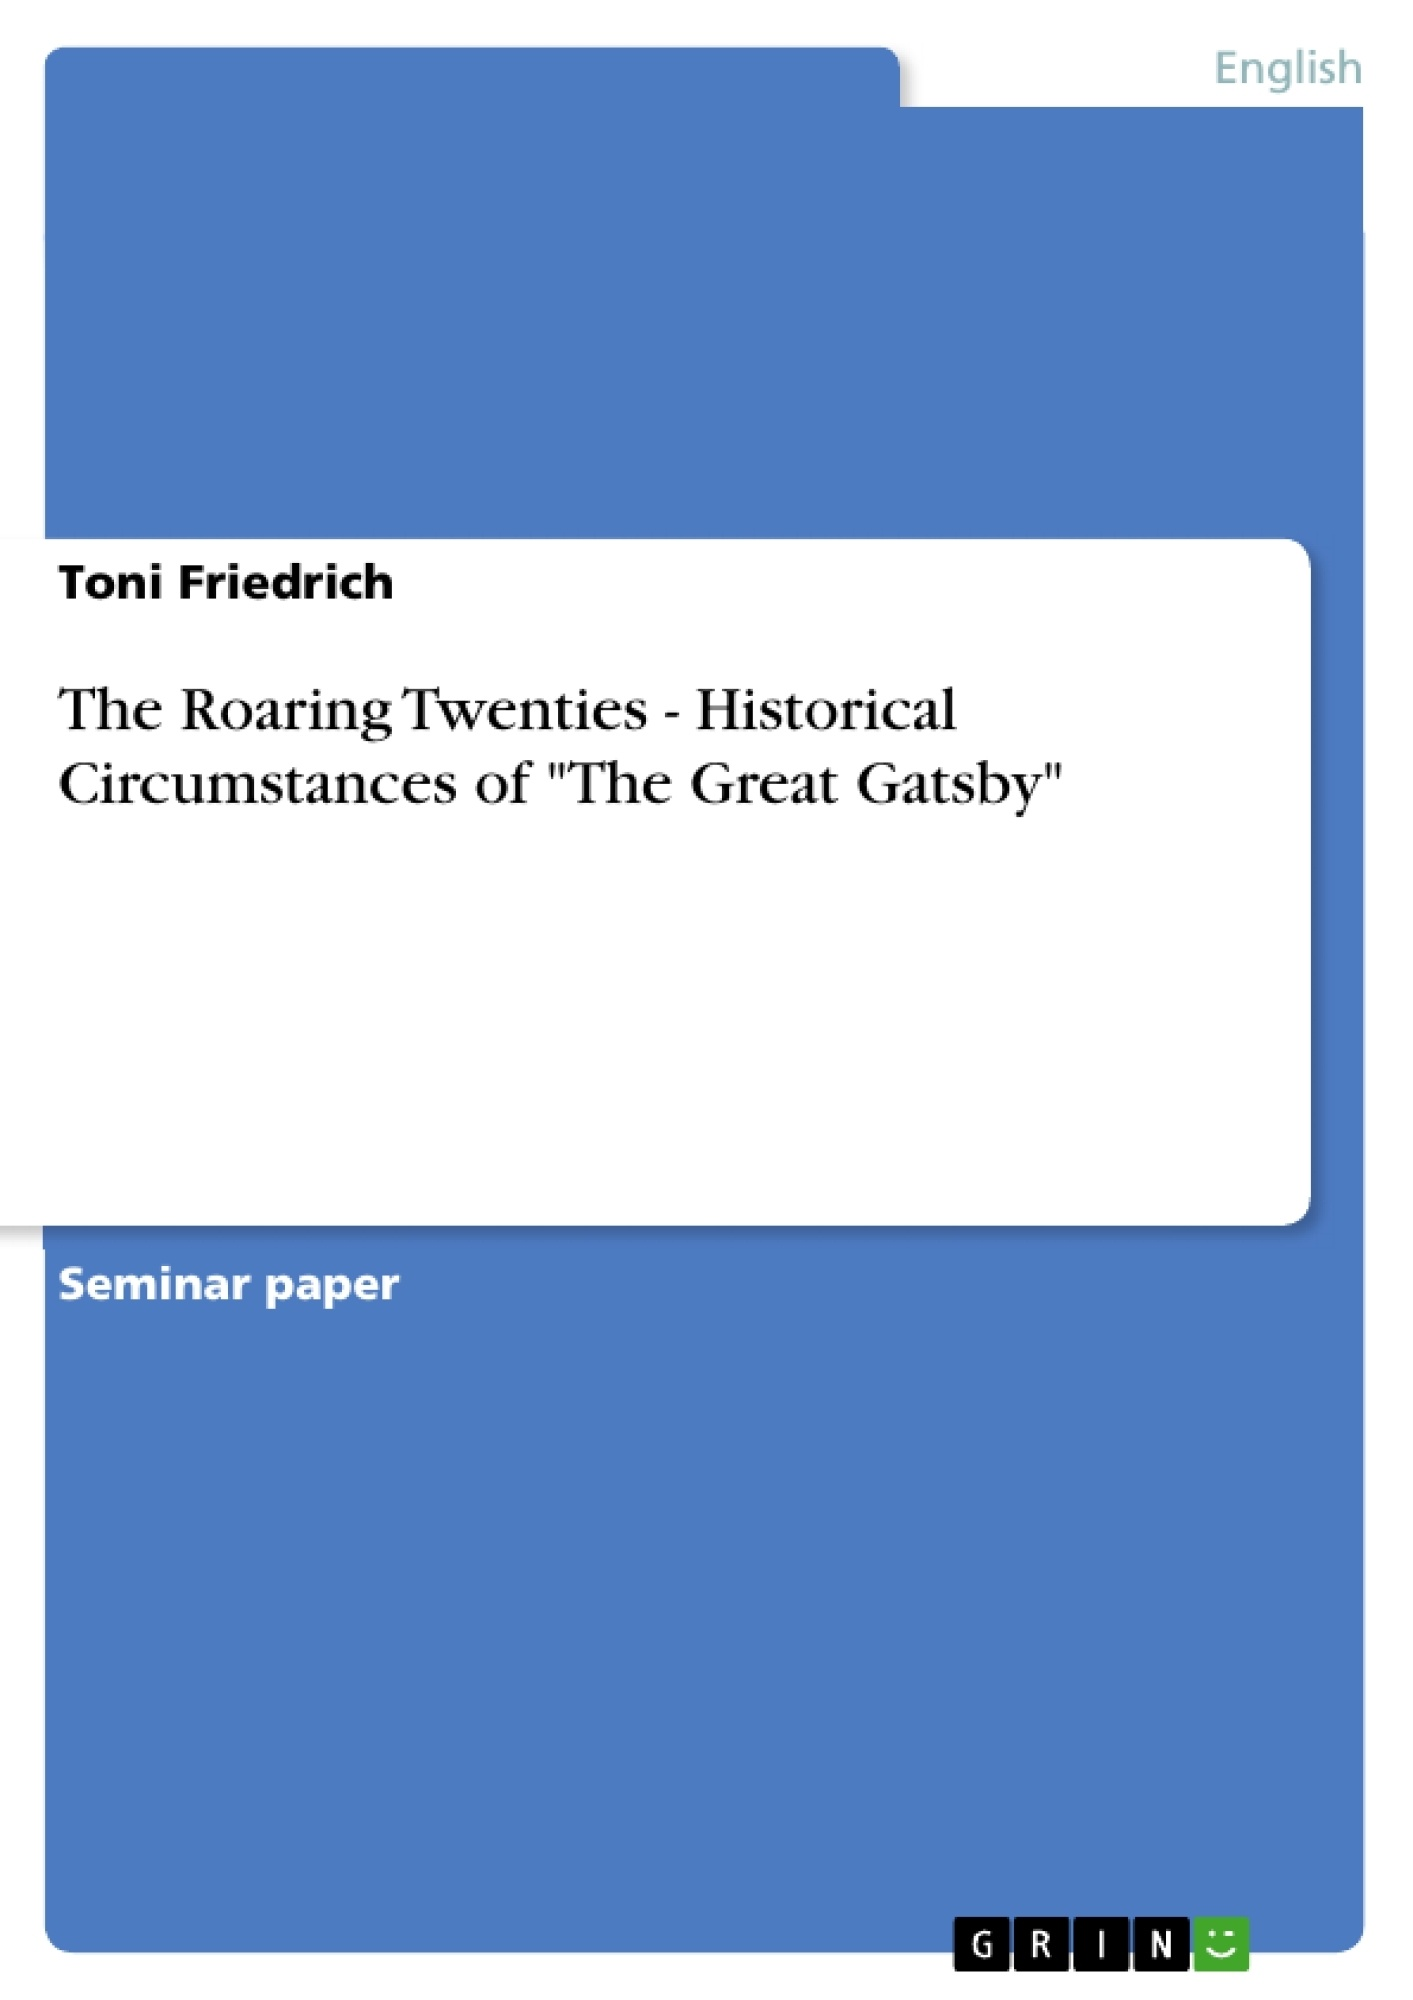 """Title: The Roaring Twenties - Historical Circumstances of """"The Great Gatsby"""""""